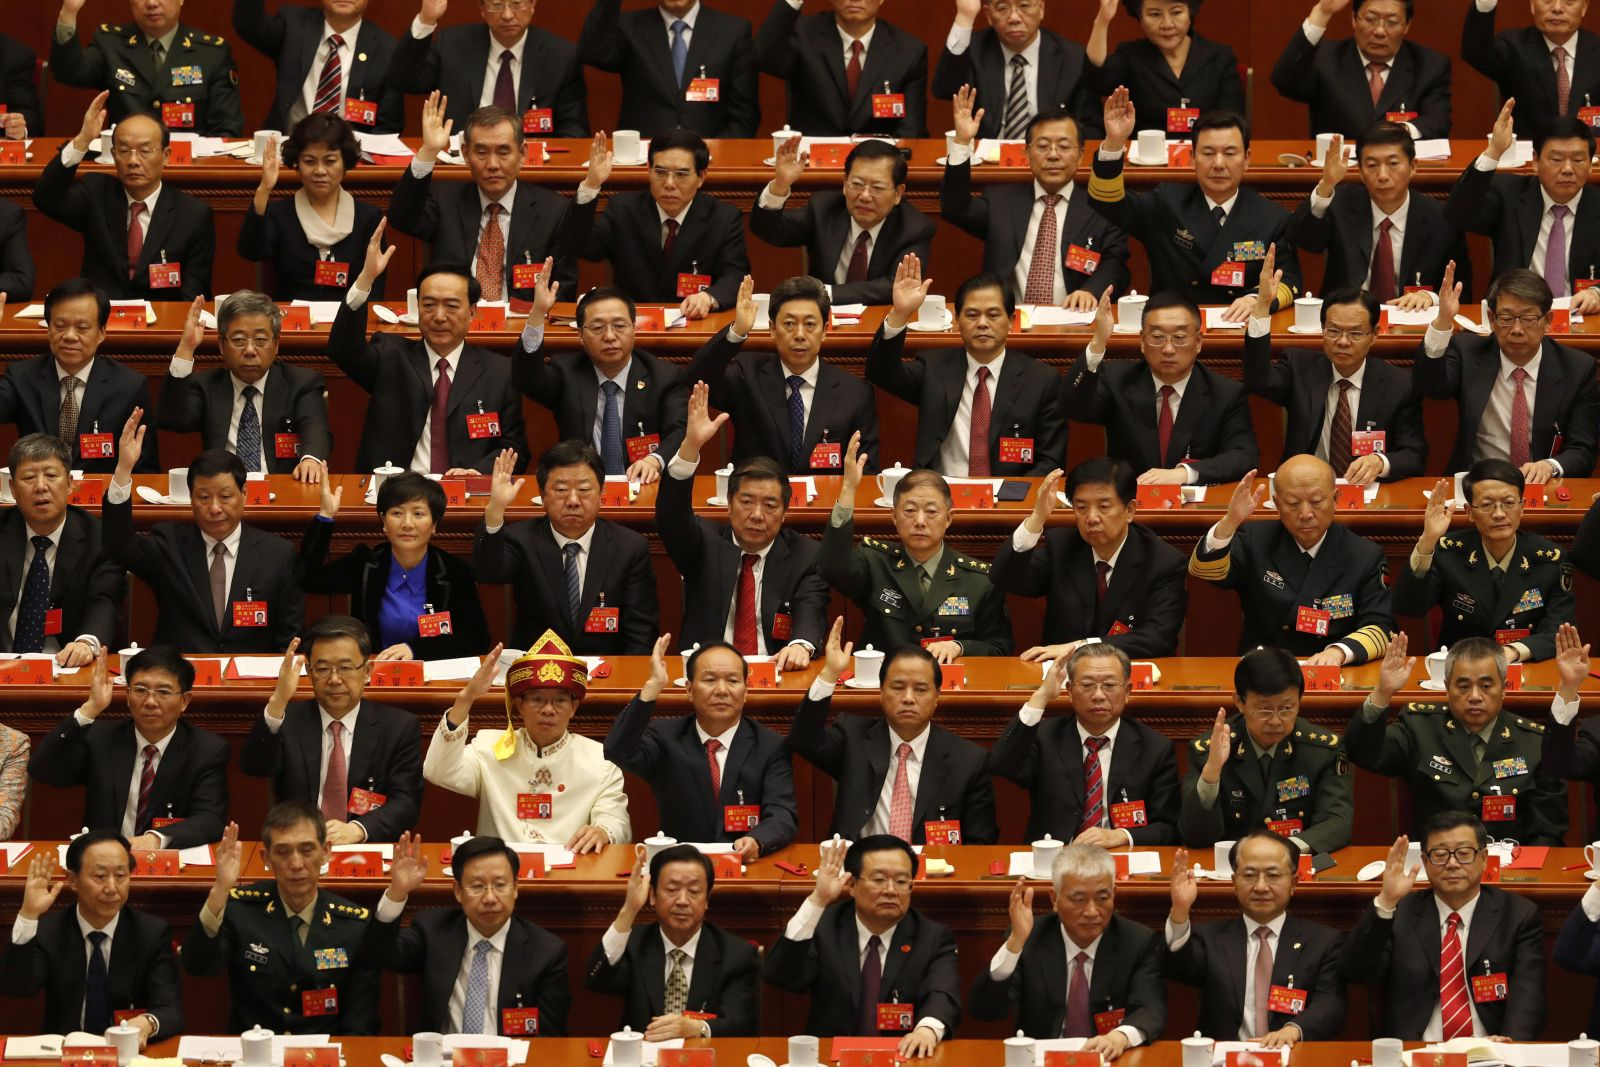 In this Tuesday, Oct. 24, 2017, file photo, delegates raise their hands to show approval of work reports during the closing ceremony for the 19th Party Congress at the Great Hall of the People in Beijing. (AP Photo/Andy Wong, File)